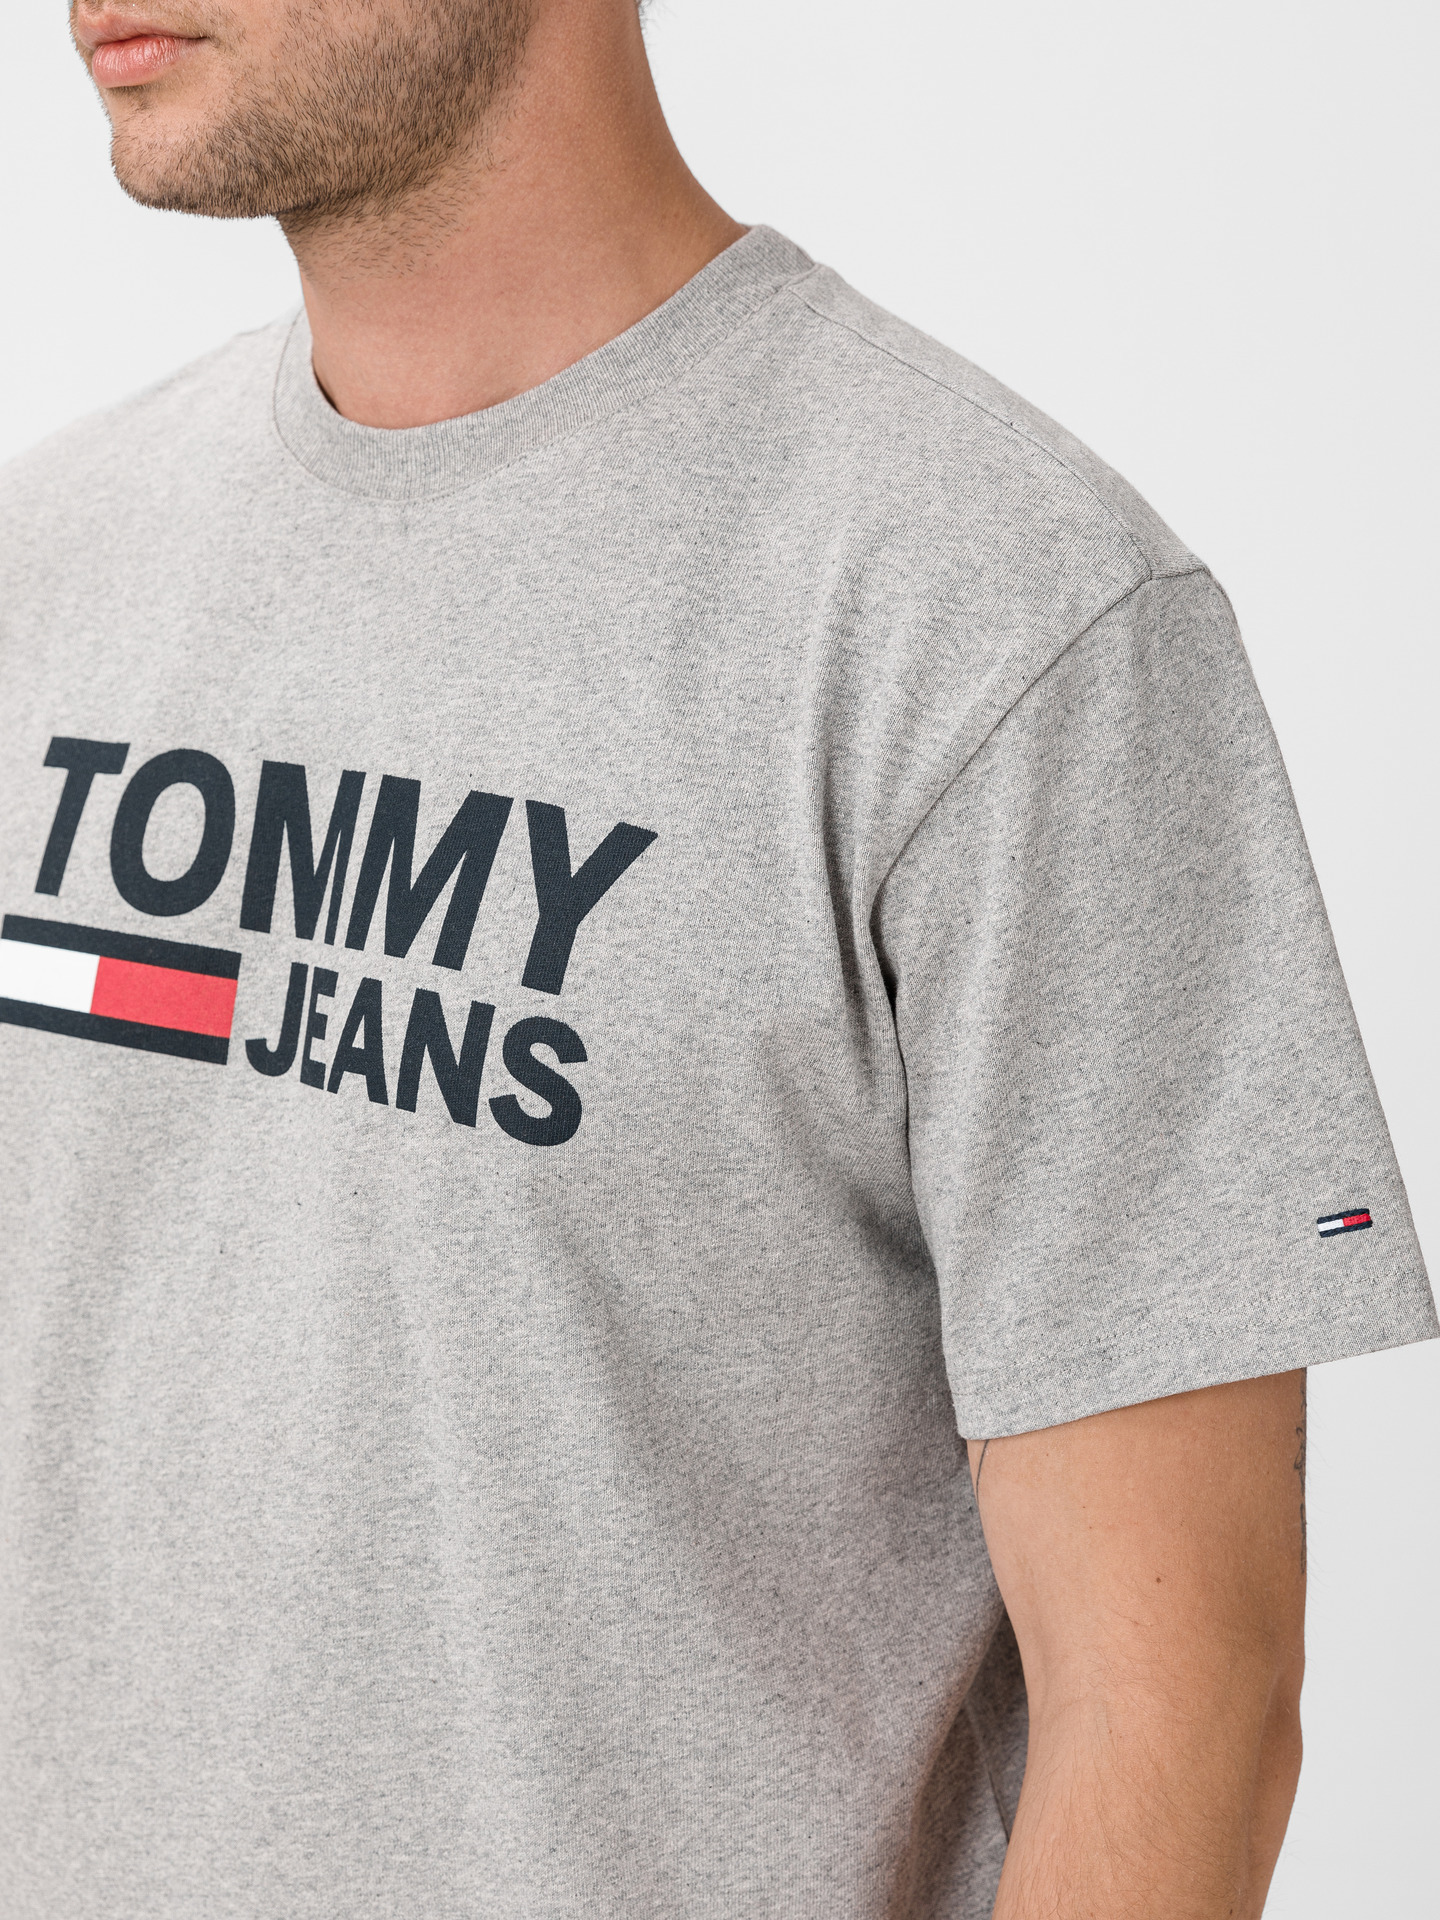 Triko Tommy Jeans (3)